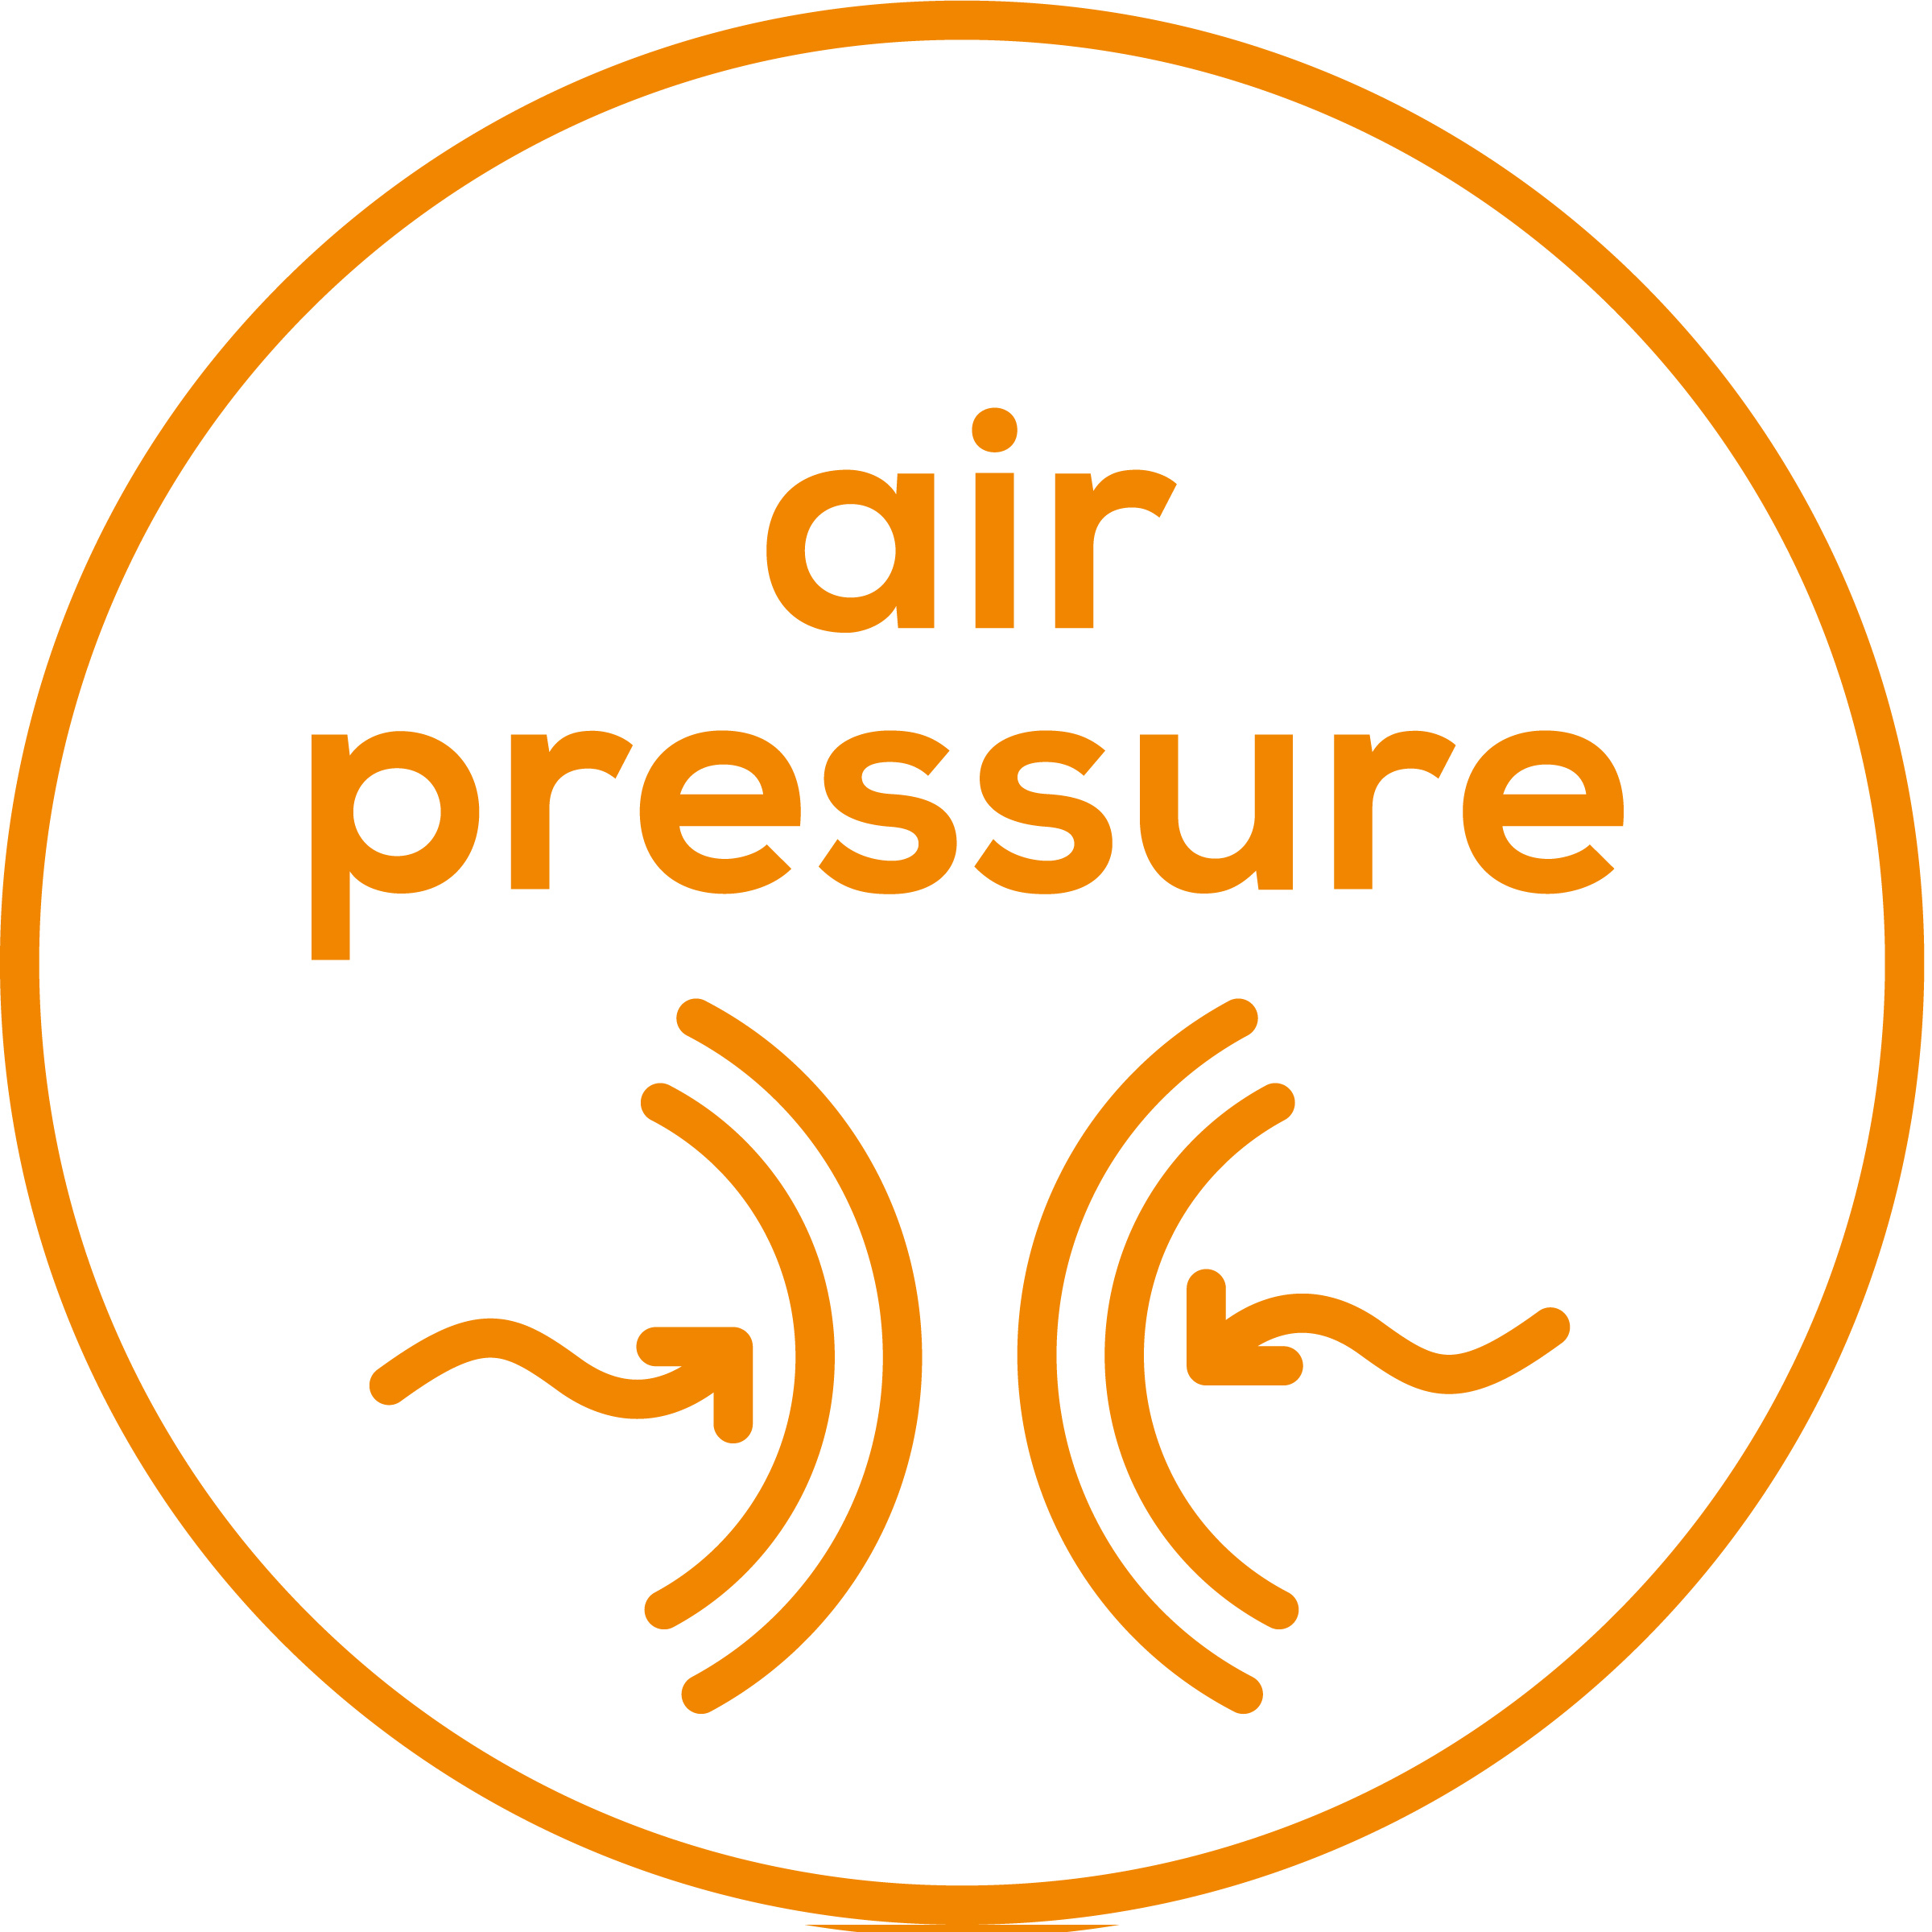 Air pressure With 7 air chambers to imitate yoga and stretching exercises